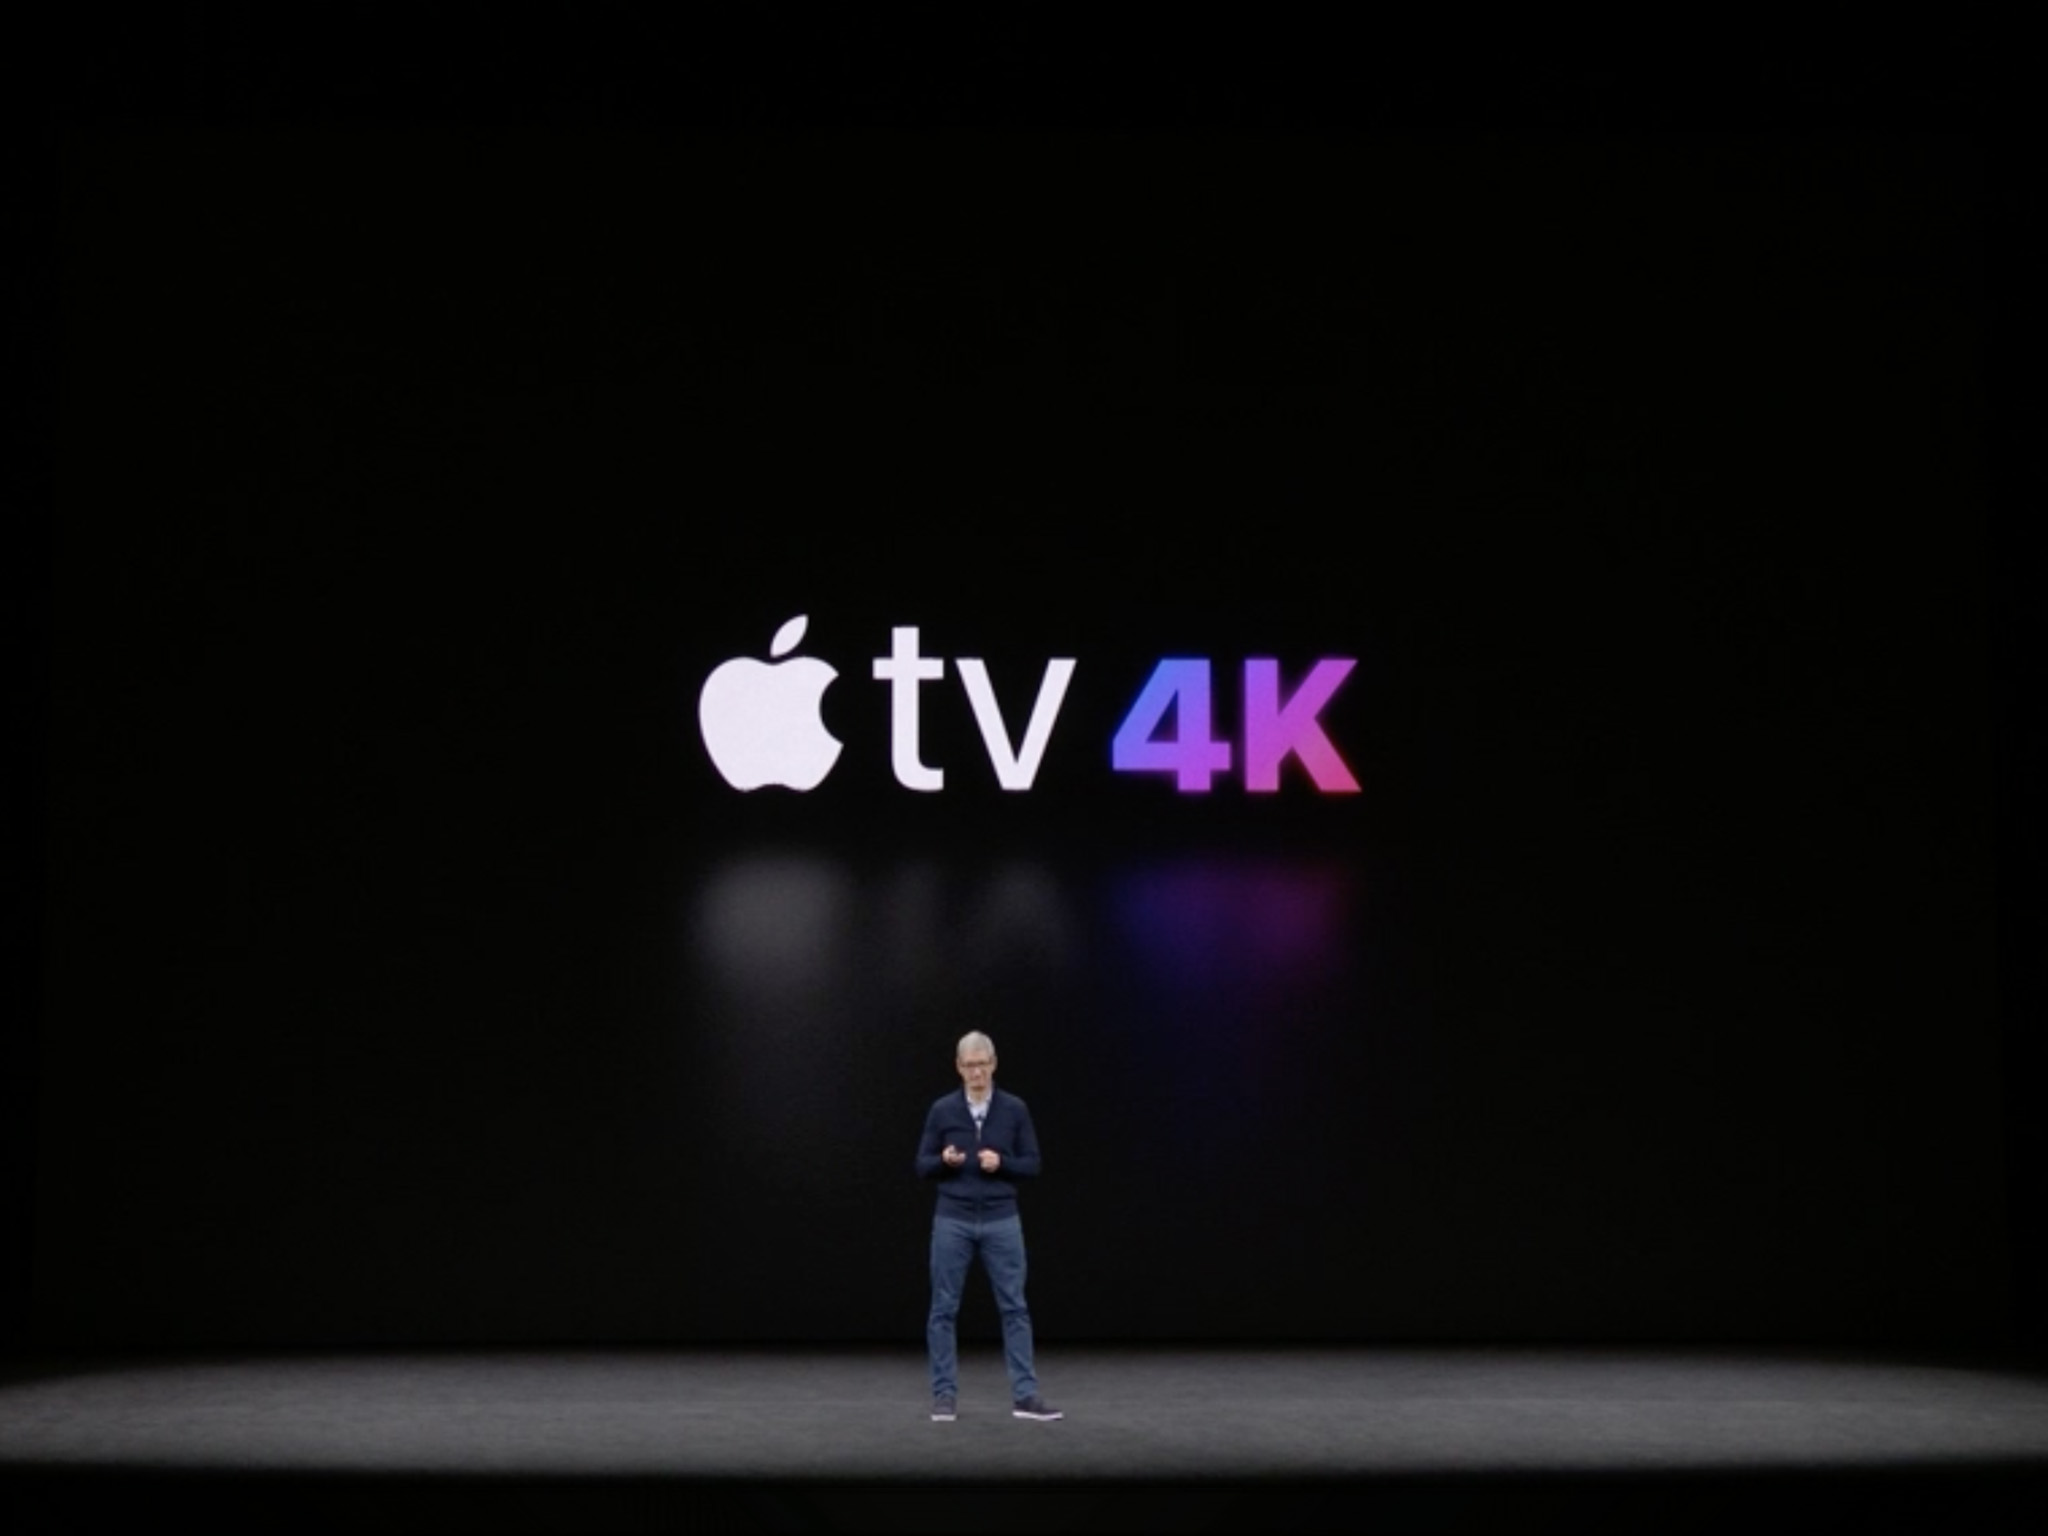 Tv 4k Best 4k Hdr Tvs For Apple Tv 4k Imore